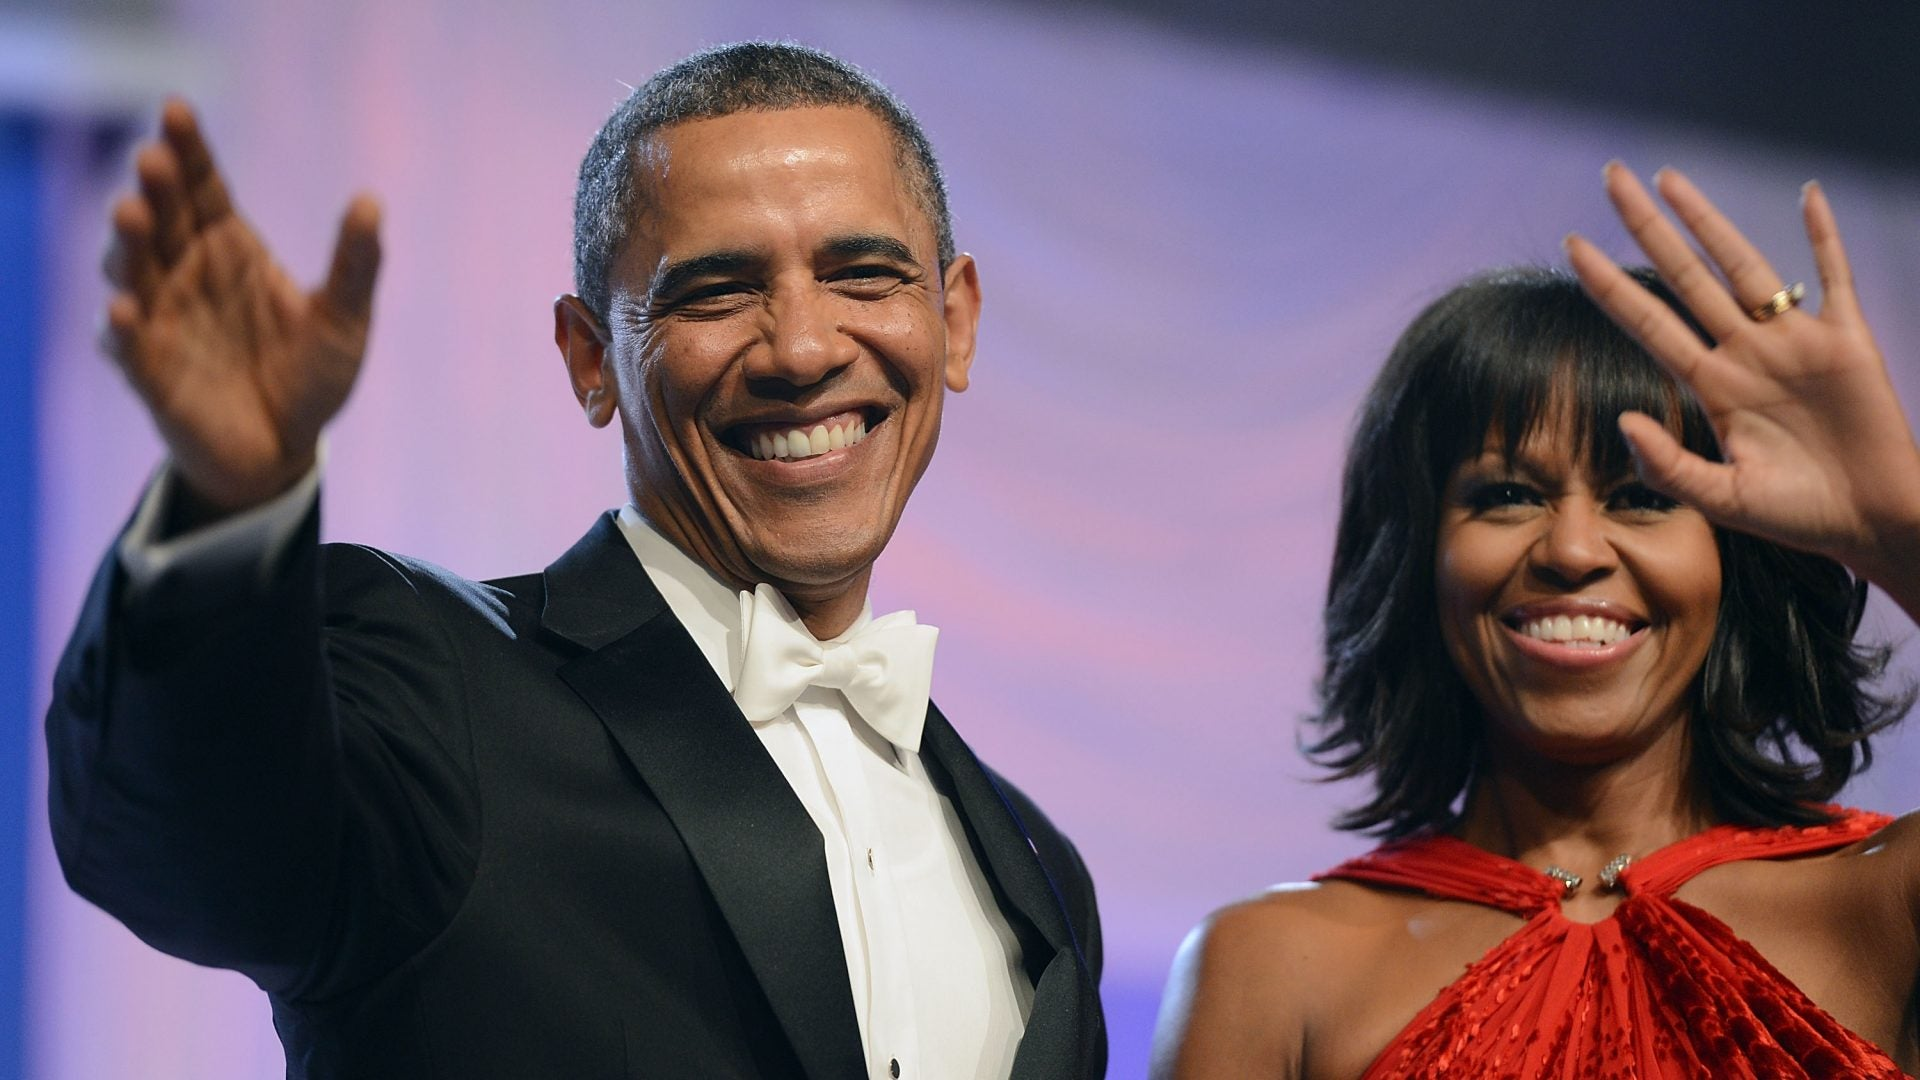 Barack Obama Explains How  Presidency Briefly Took A Toll On His Marriage To Michelle Obama